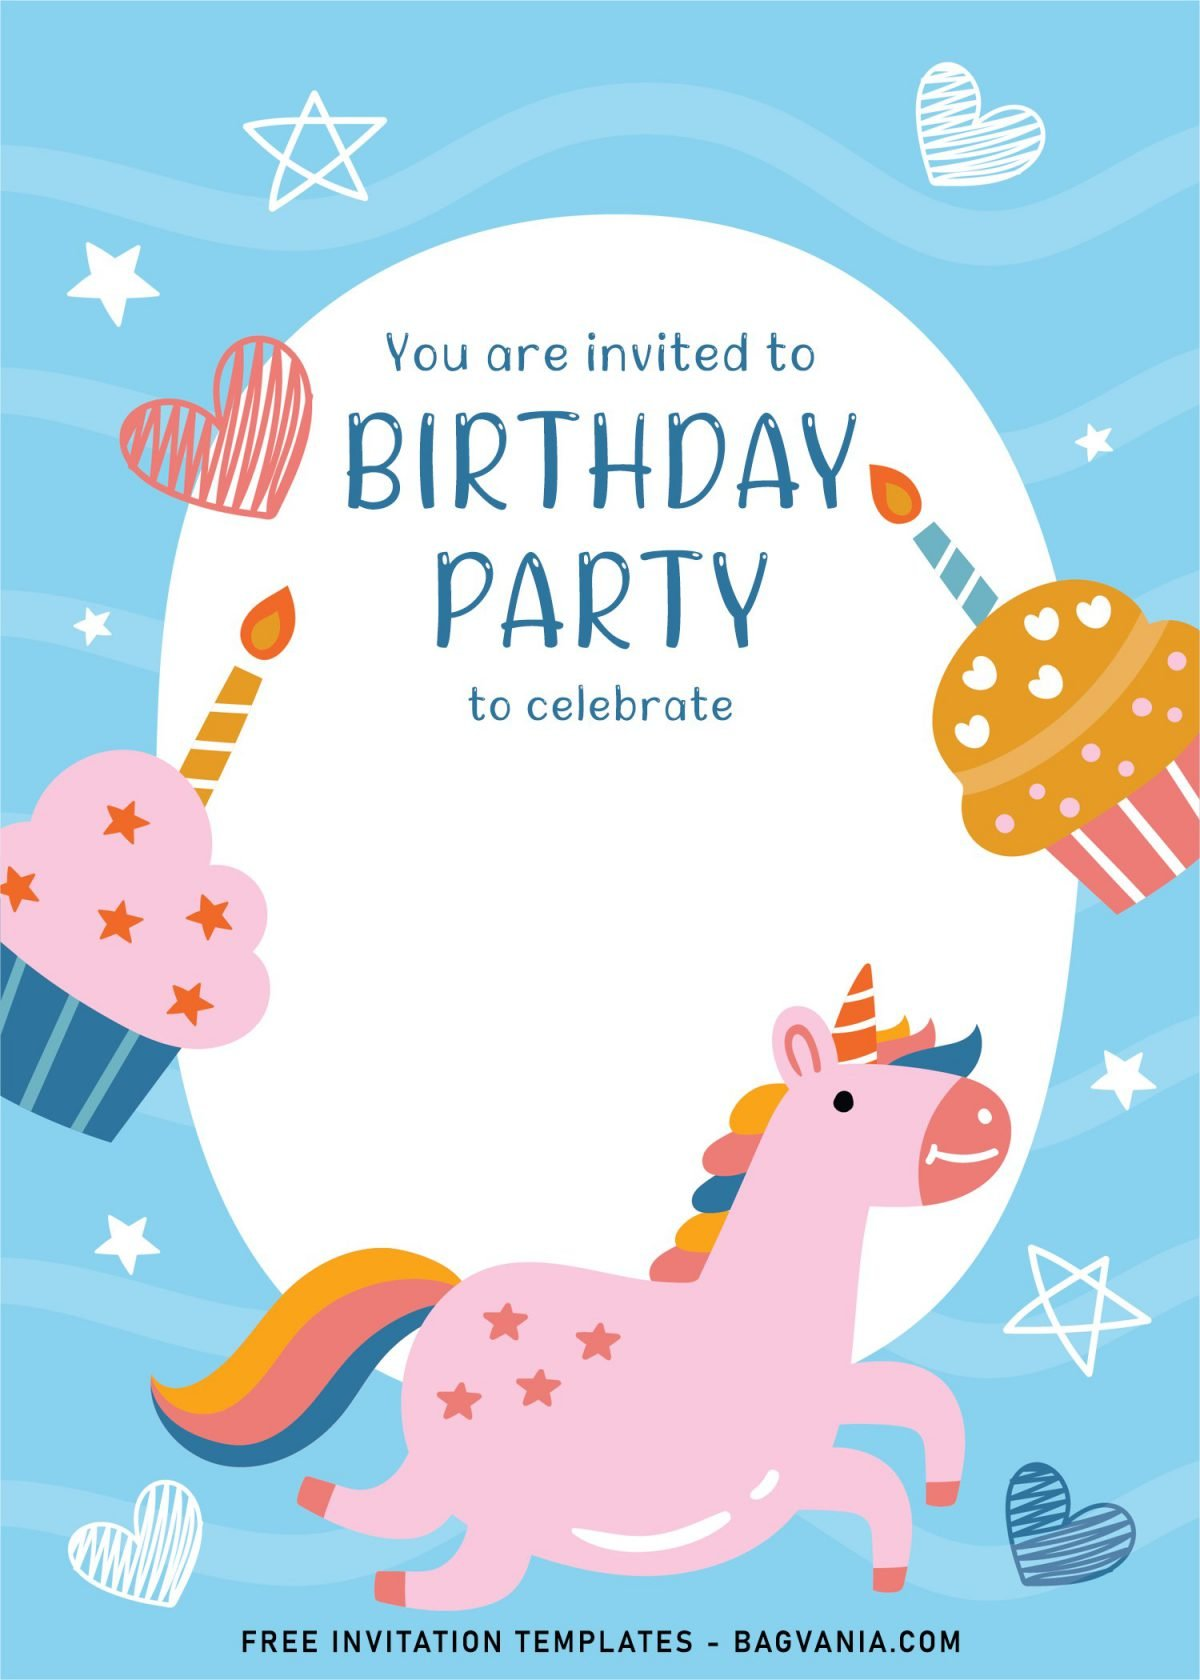 7+ Cute And Fun Birthday Invitation Templates For Kids Birthday Party and has Magical Unicorn with rainbow tail